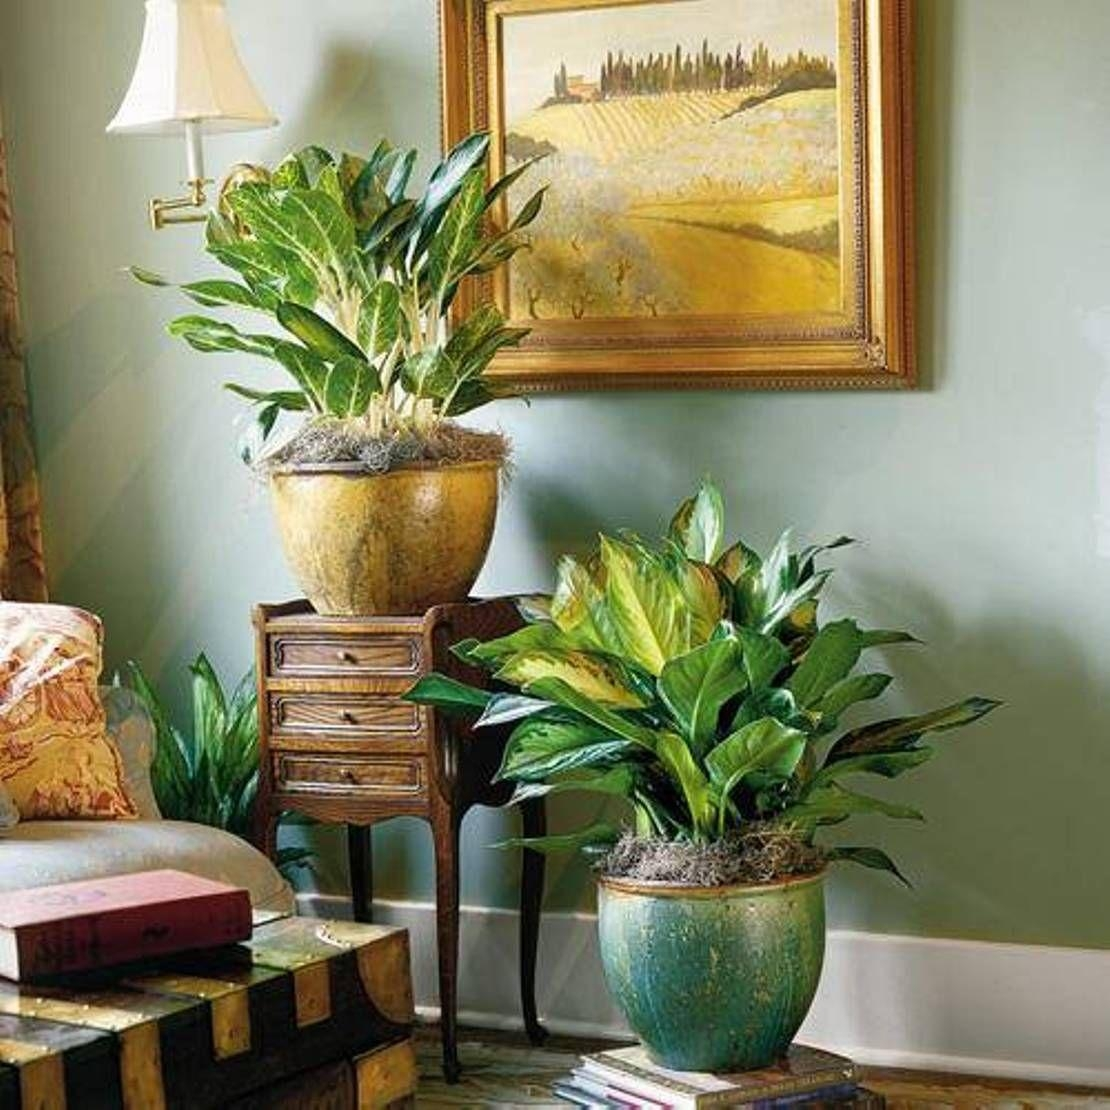 Living Room With Framed Wall Art And Chinese Evergeen Houseplants Intended For Exotic Wall Art (View 20 of 20)